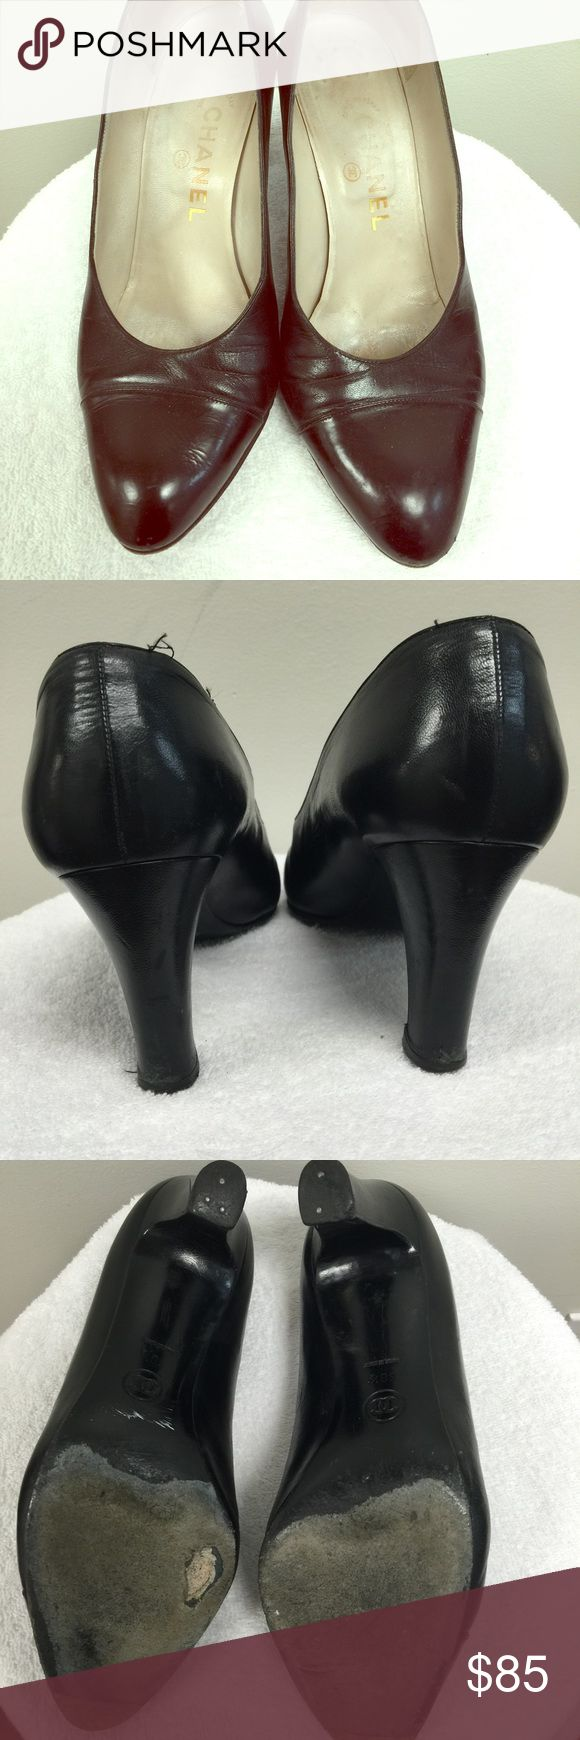 Authentic Chanel Heels These are 100% authentic. They are pretty beat up if you notice in the photos, there is a hole starting to open up on the bottom of the shoes and the heels are very worn out but nothing a cobbler can't fix. Price reflects the condition of the shoes CHANEL Shoes Heels